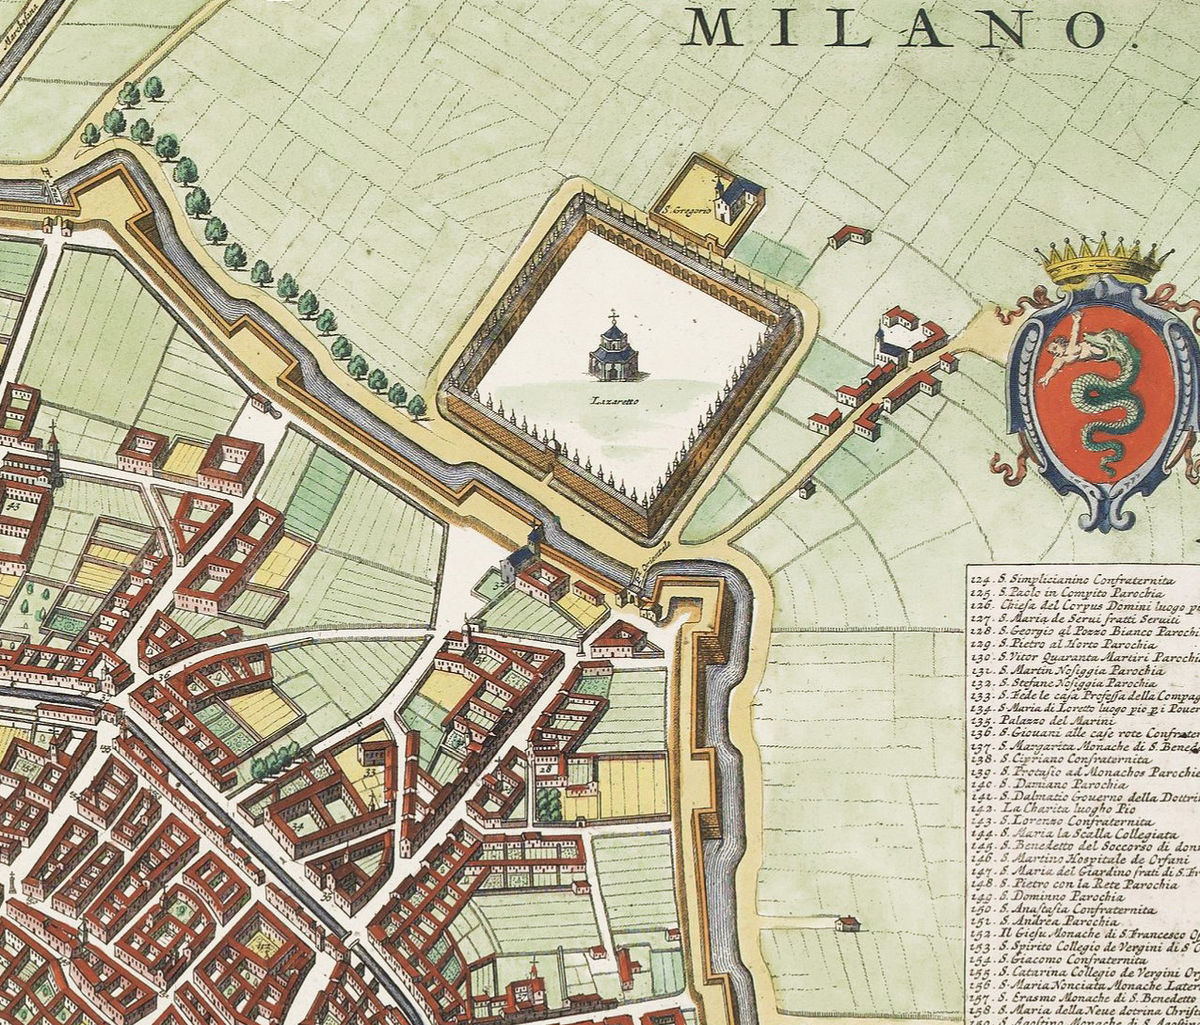 Old Map of Milan Italy 1700 Vintage Map of Milan - product images  of